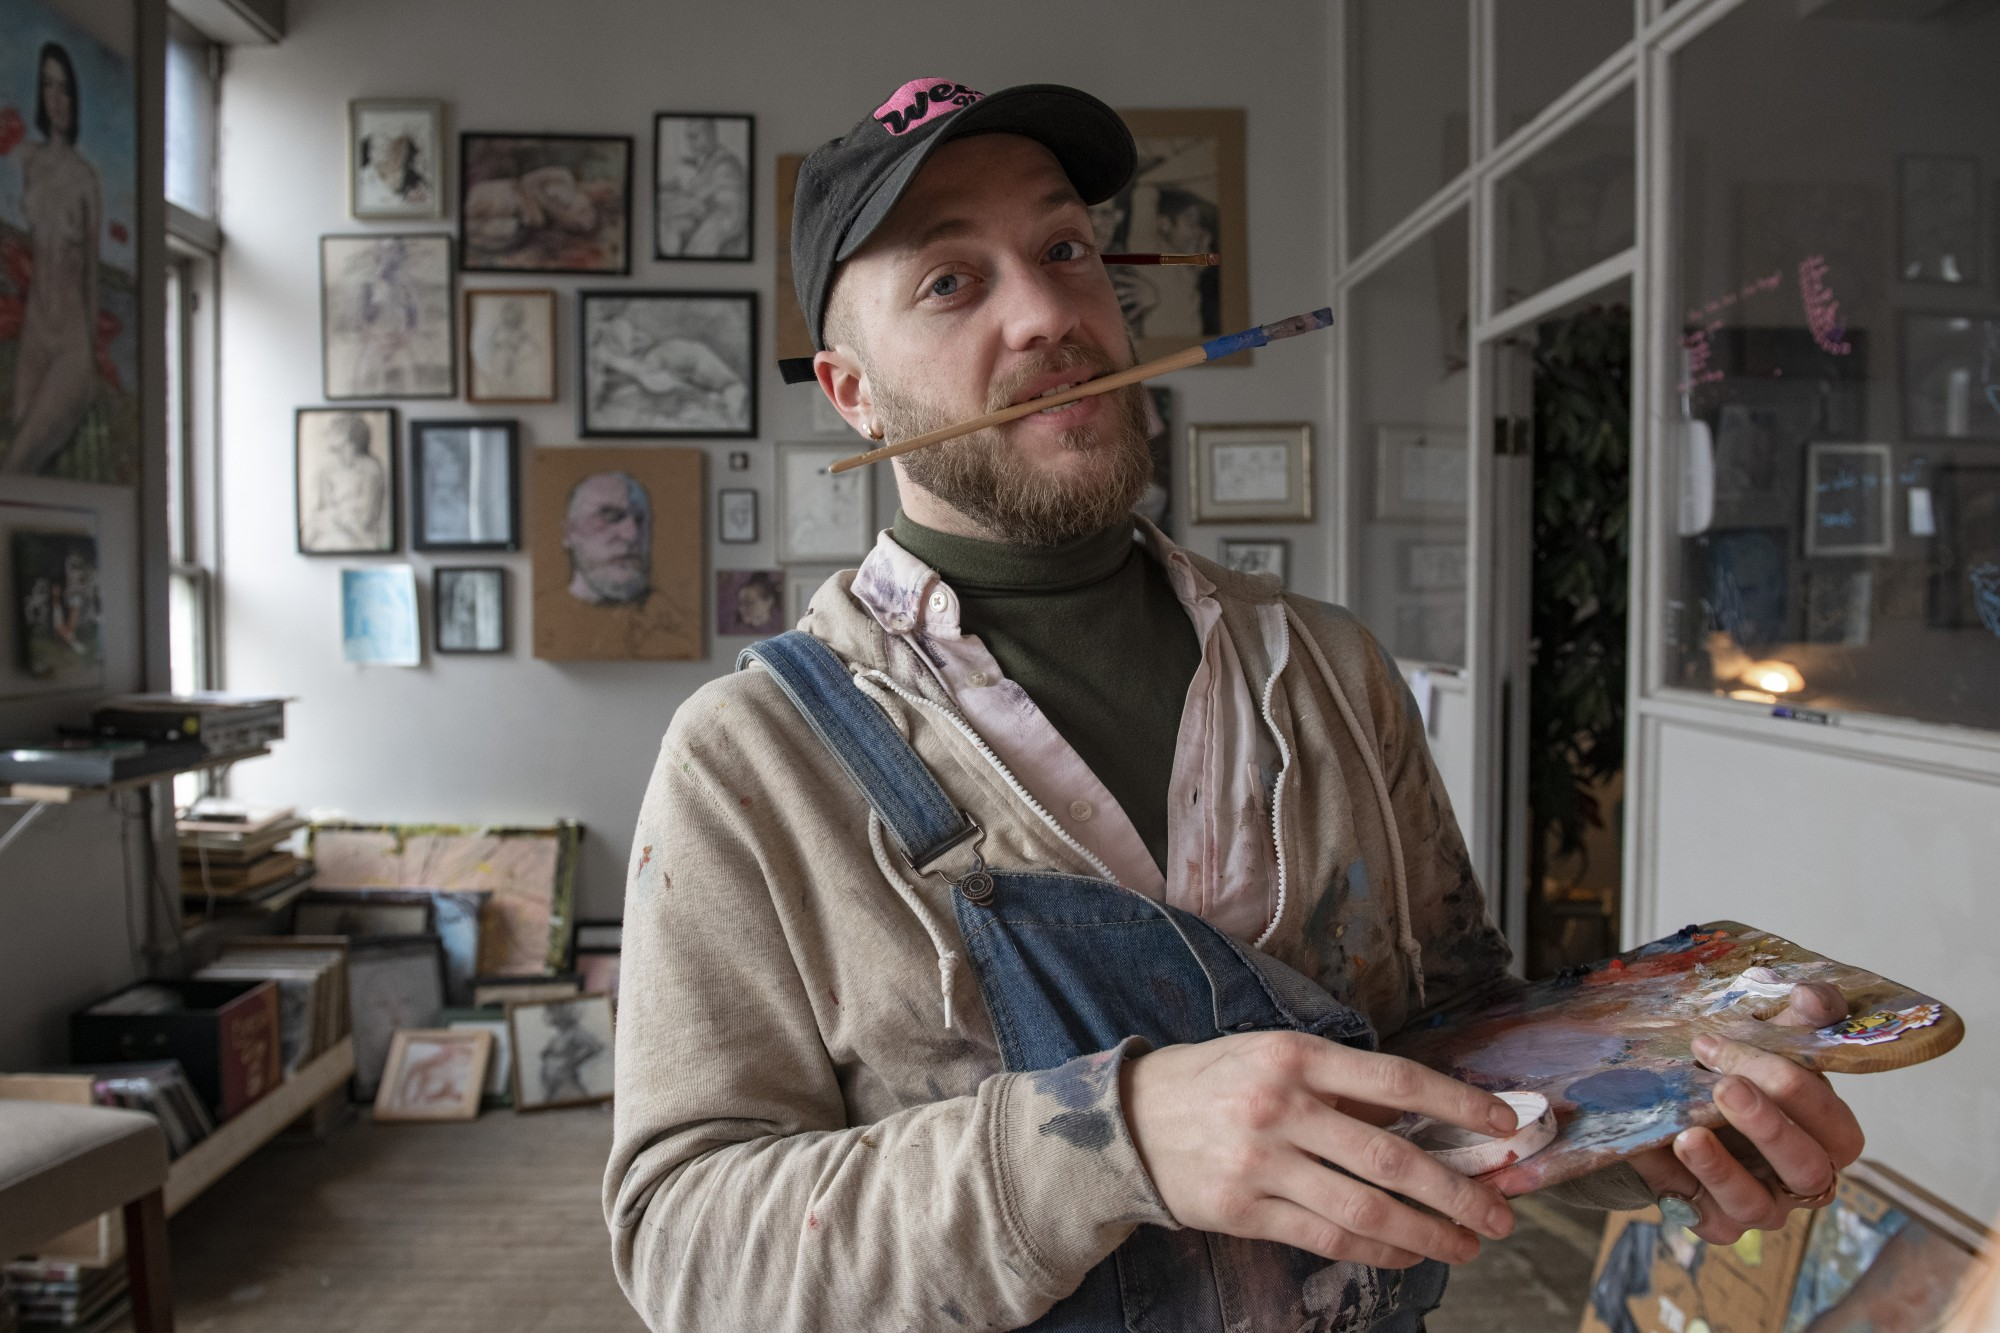 Bennett Ritchie poses for a portrait in his art studio in Richmond, Indiana, as he works on a commission on December 24, 2020.